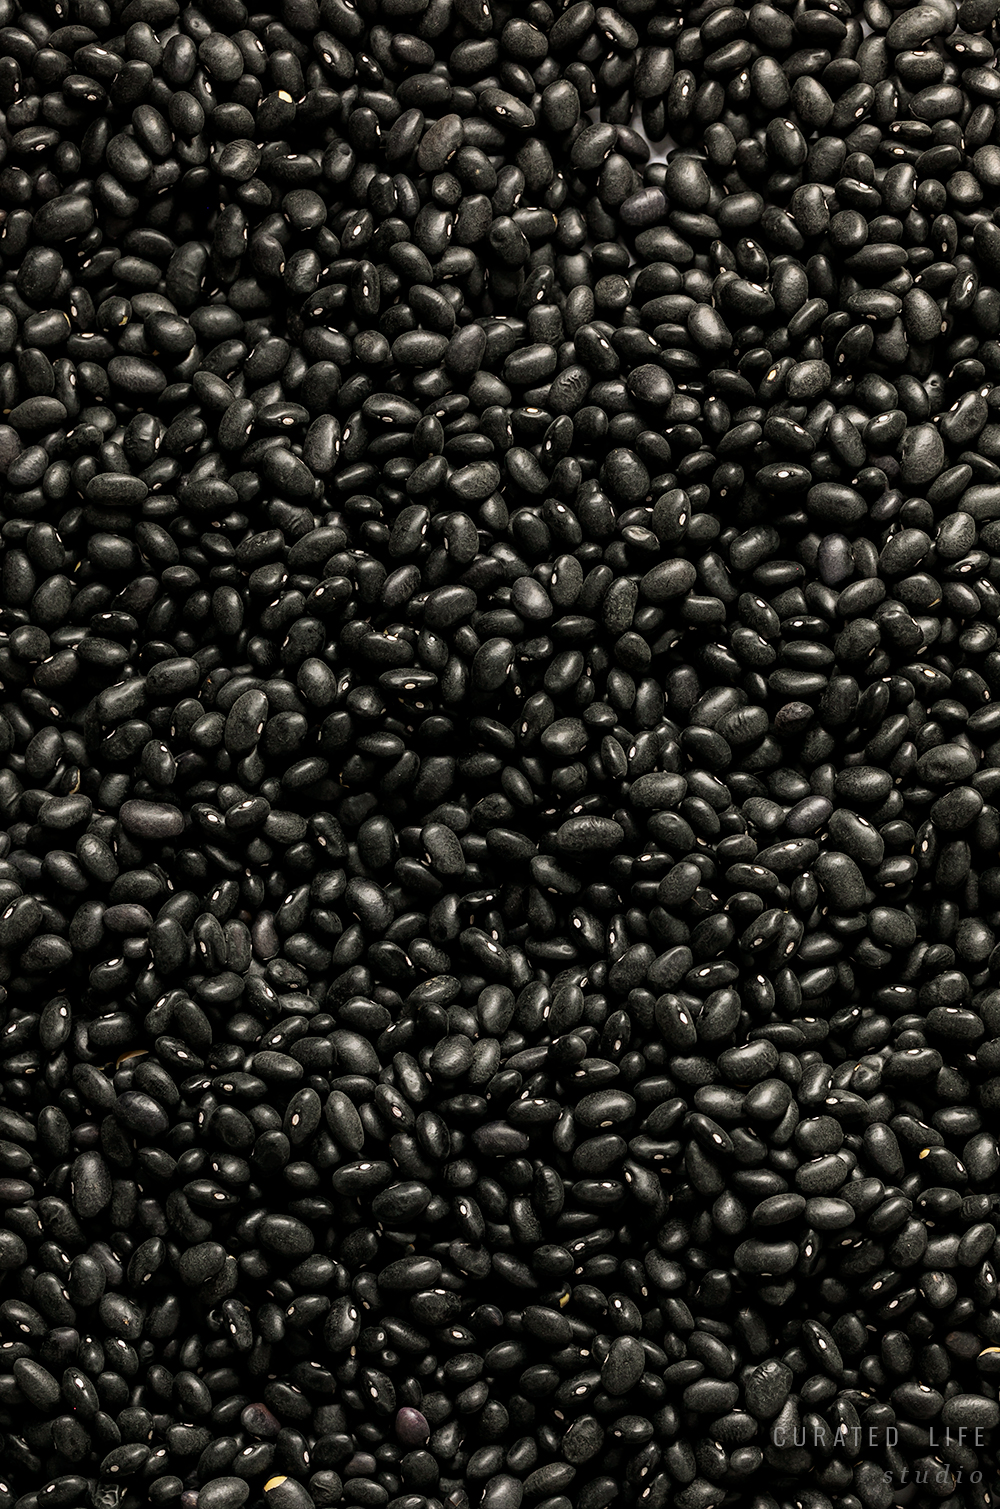 dry black beans  #recipe #black_beans #from_scratch #pressure_cooker #how_to #scratch #homemade #cook #make #videos #benefits